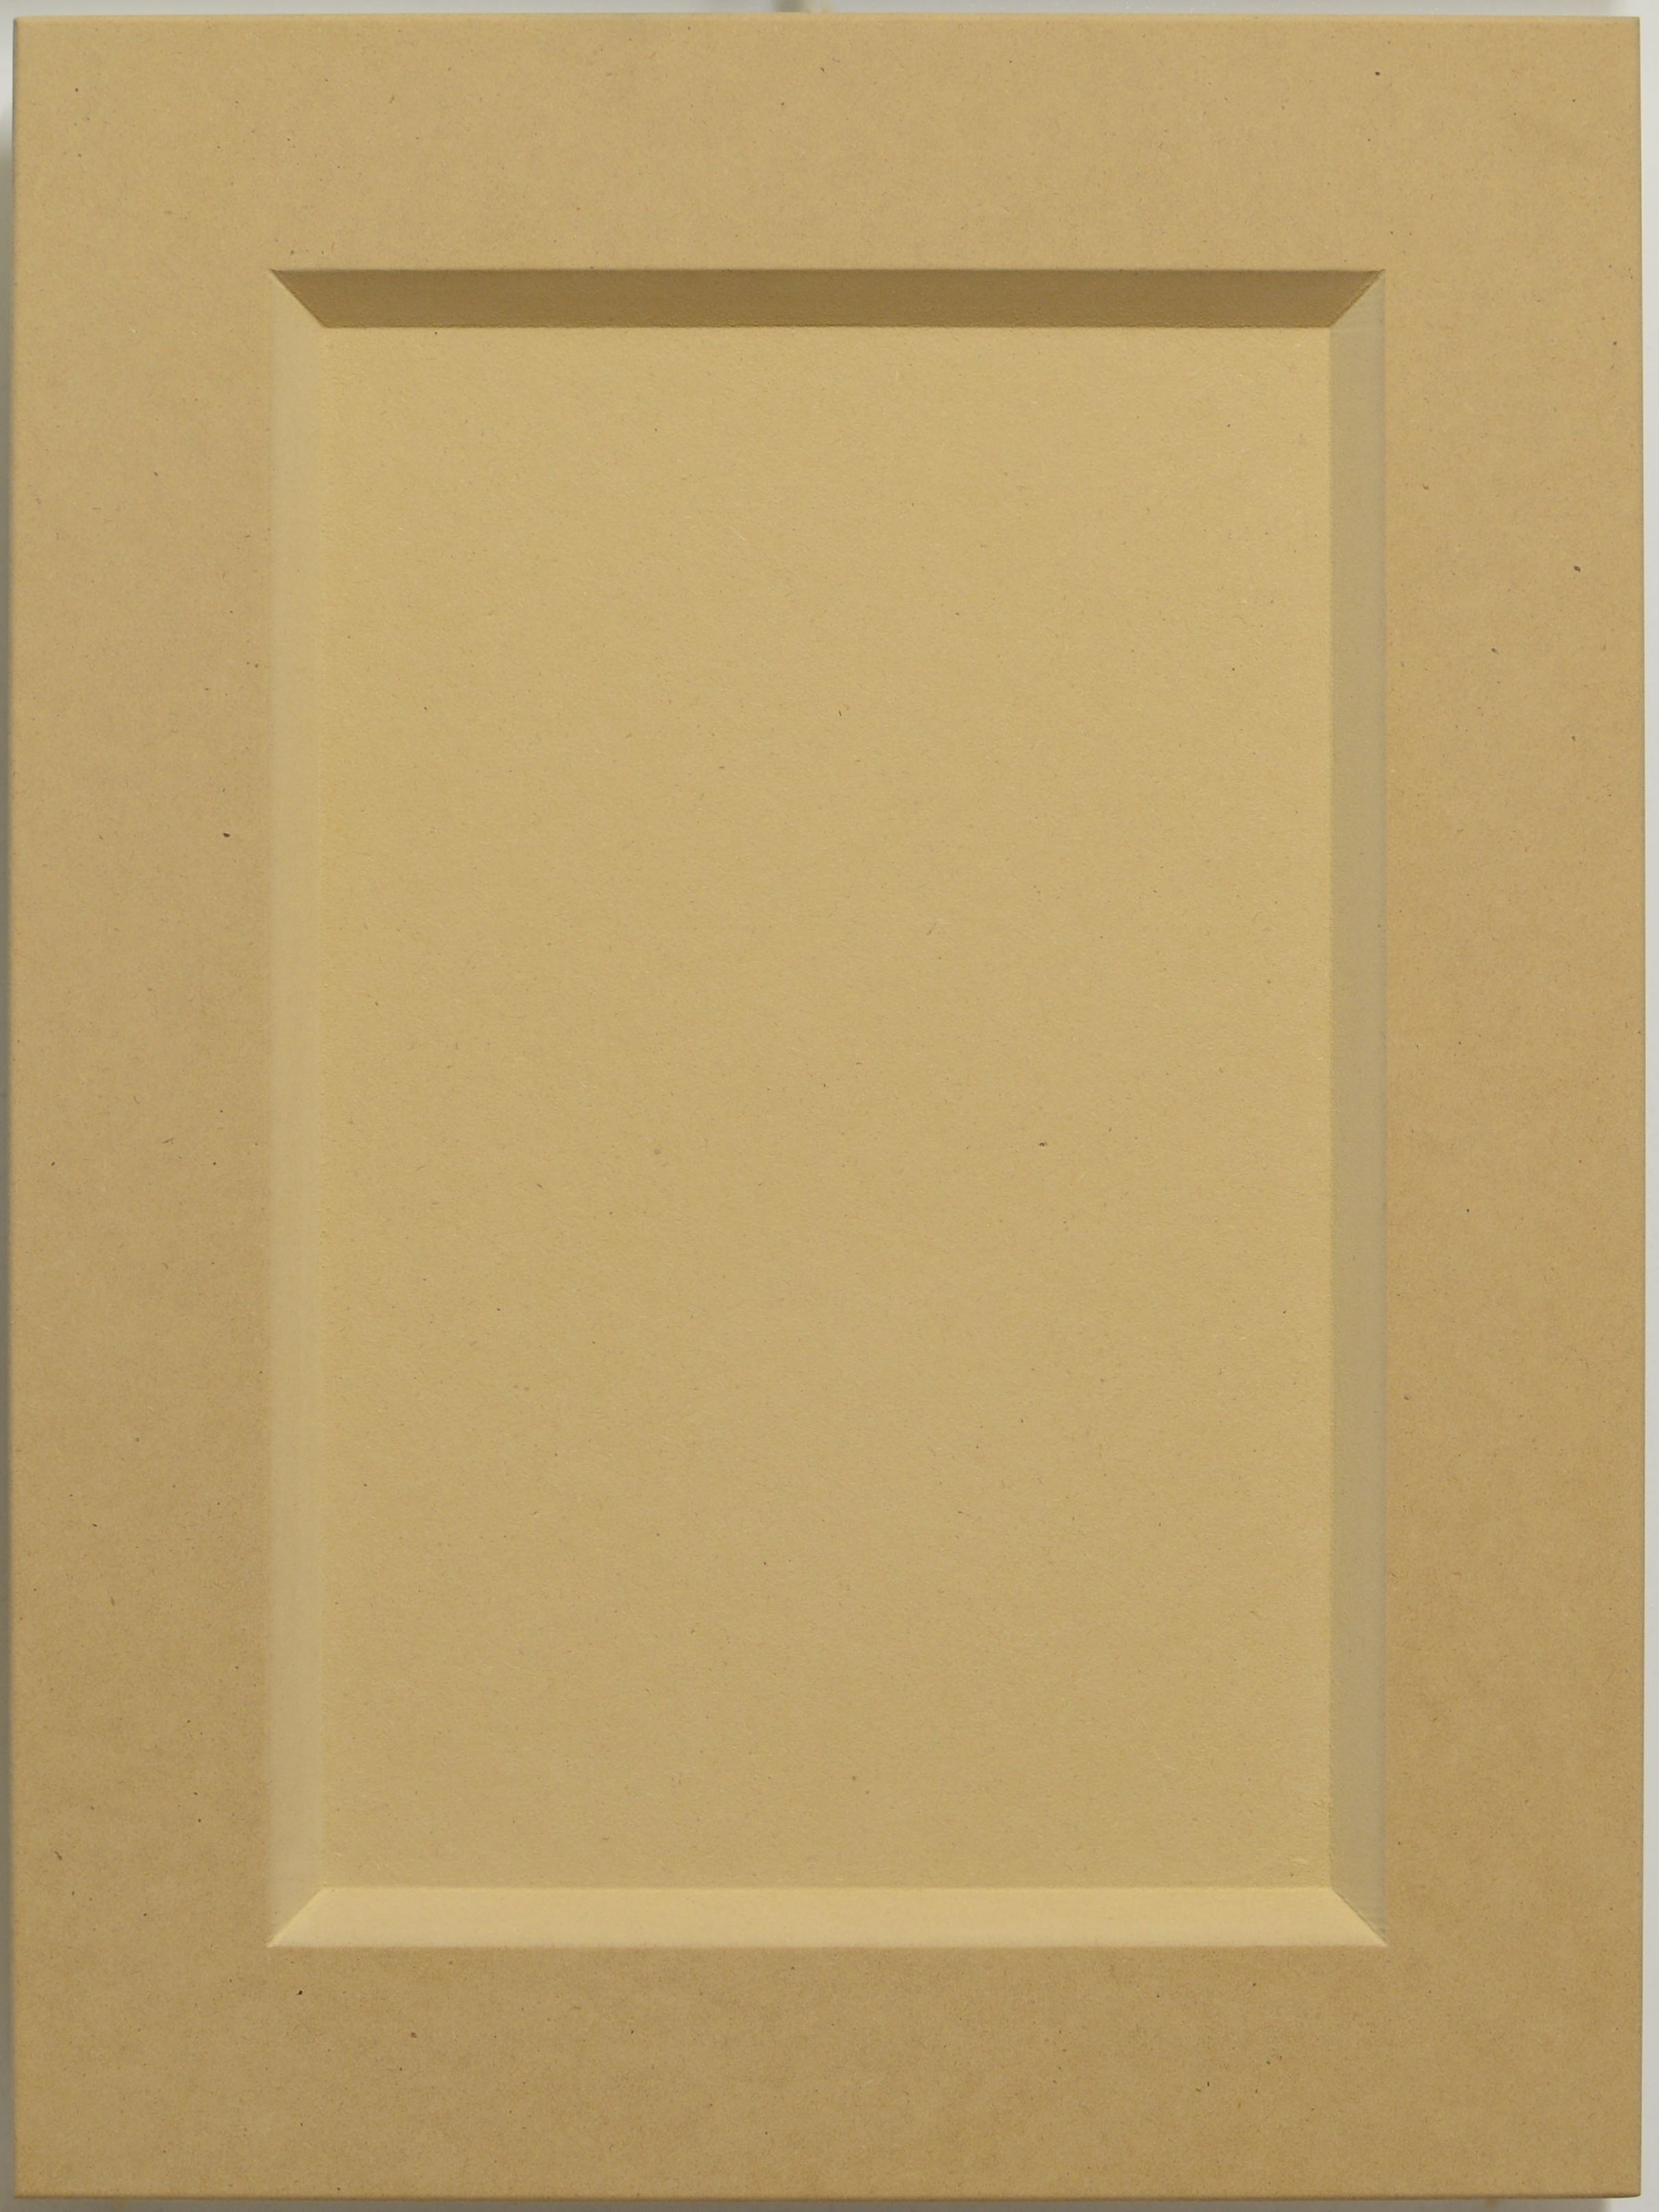 Allstyle Tilford Mdf Kitchen Cabinet Door Bevelled Inside Profile